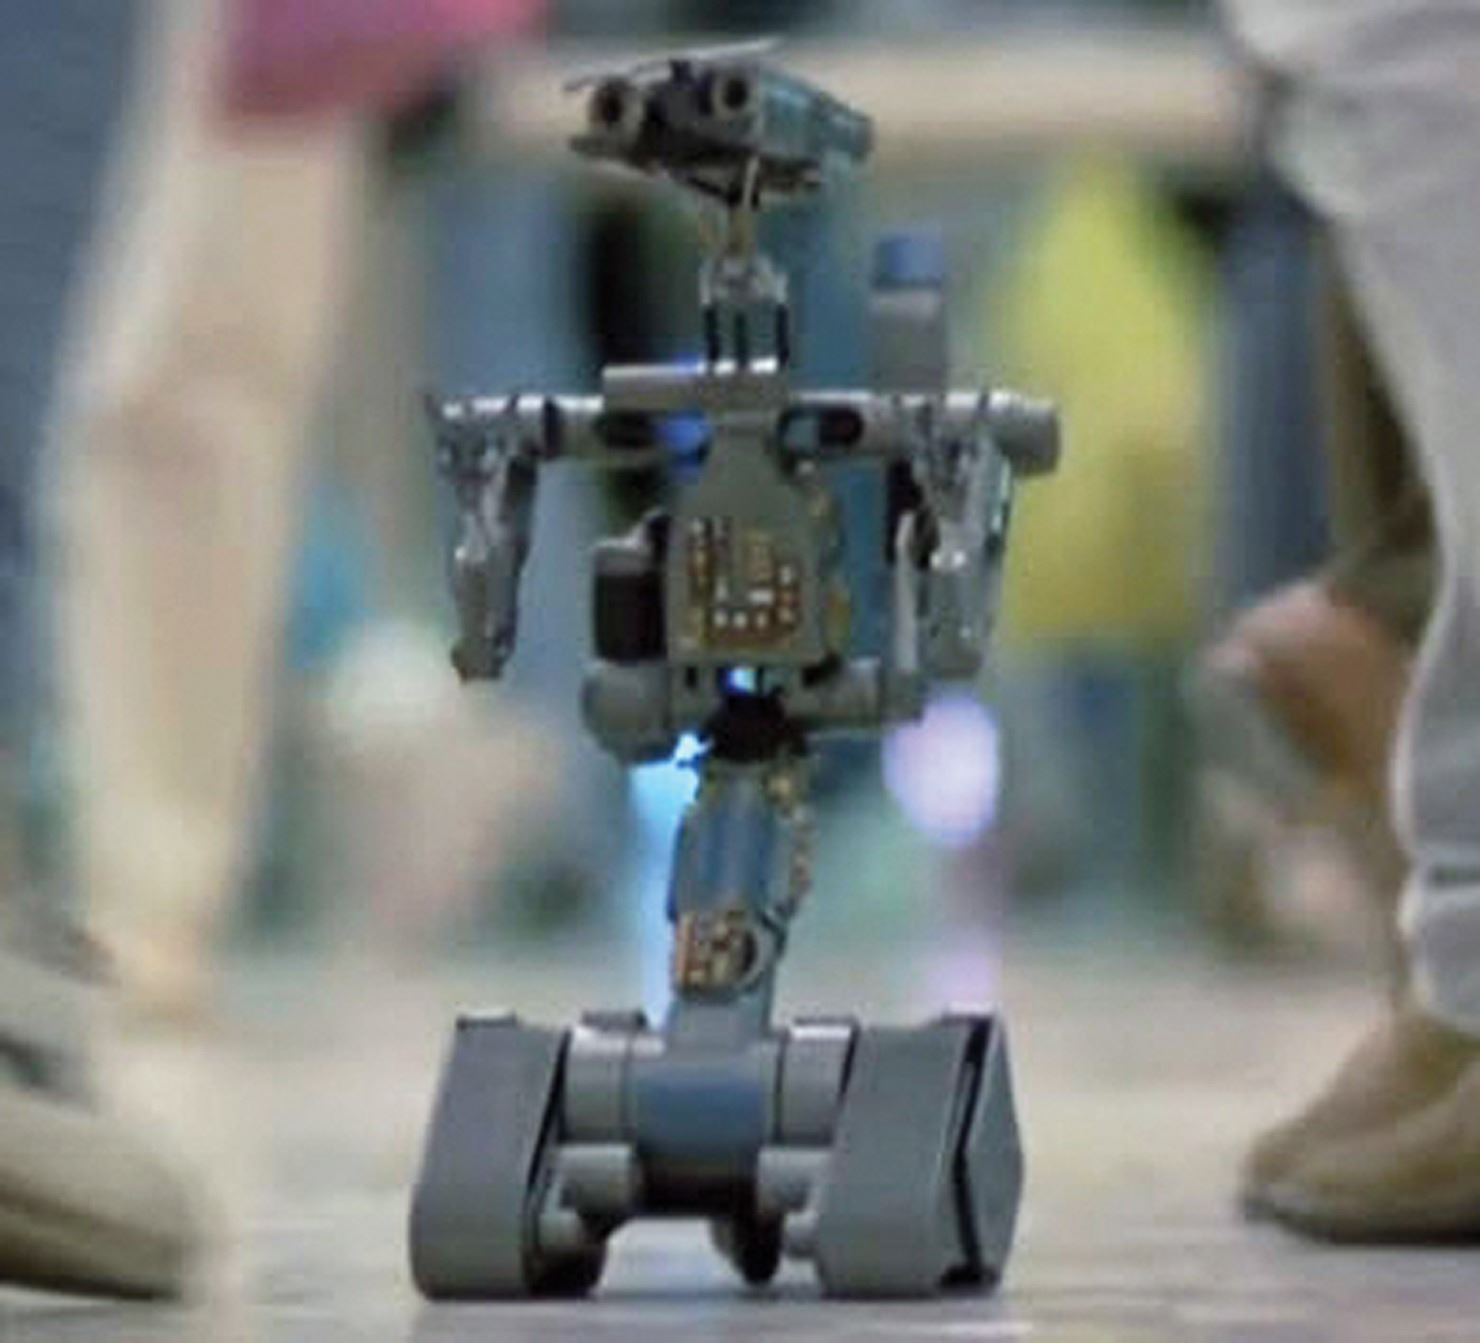 johnny 5 robot model from short circuit 2image 2 johnny 5 robot model from short circuit 2